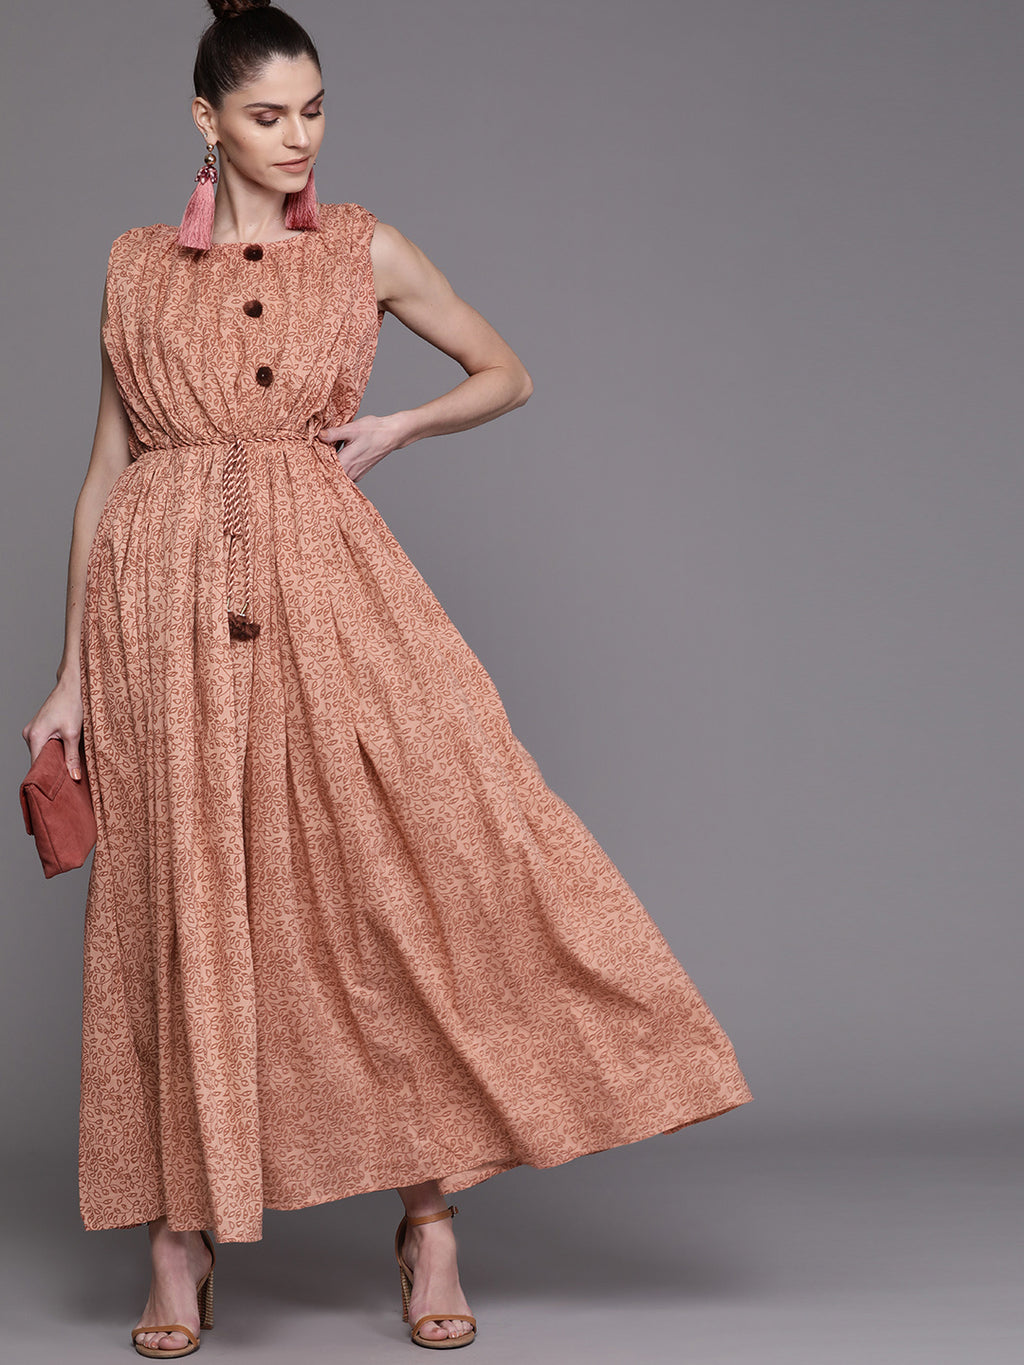 Peach-Coloured & Brown Printed Maxi Dress (Fully Stitched)